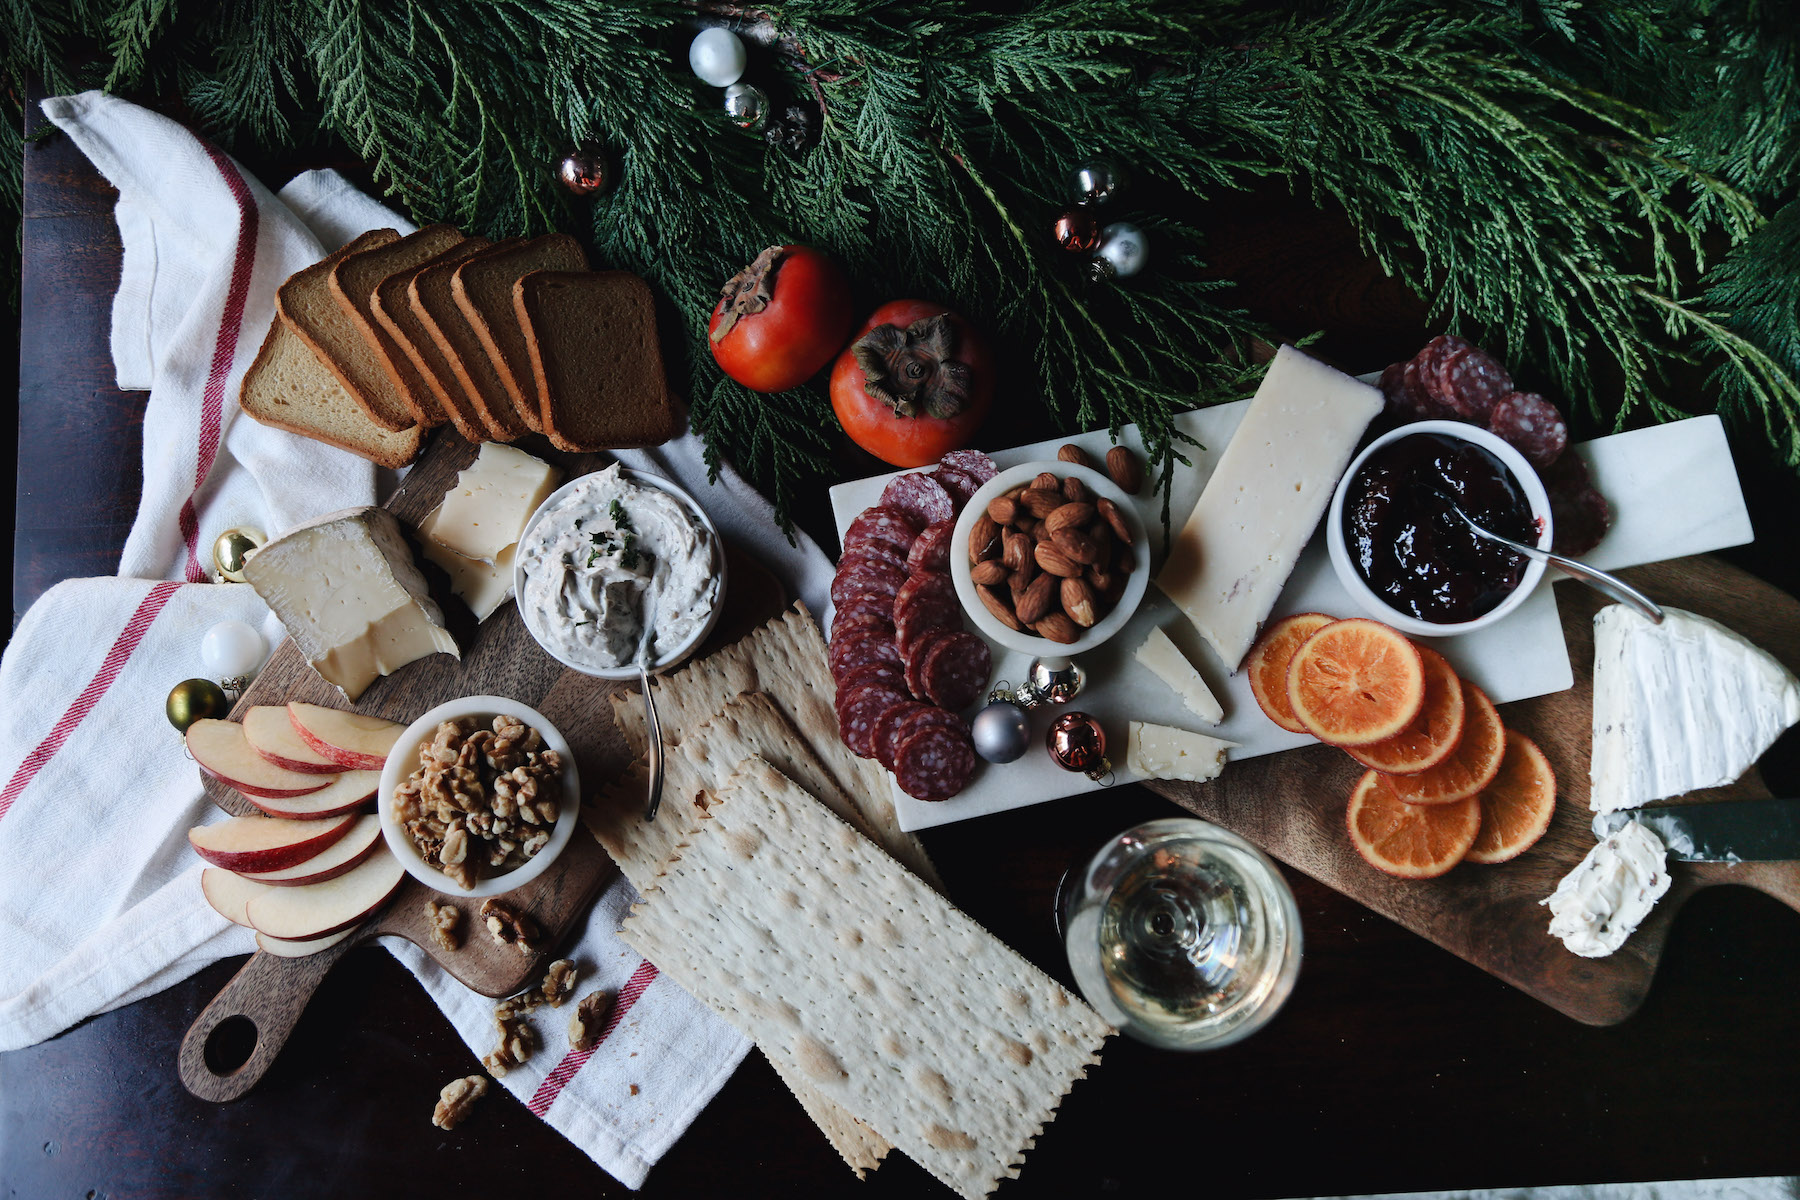 how to create a holiday cheeseboard for under 35 dollars14.jpg